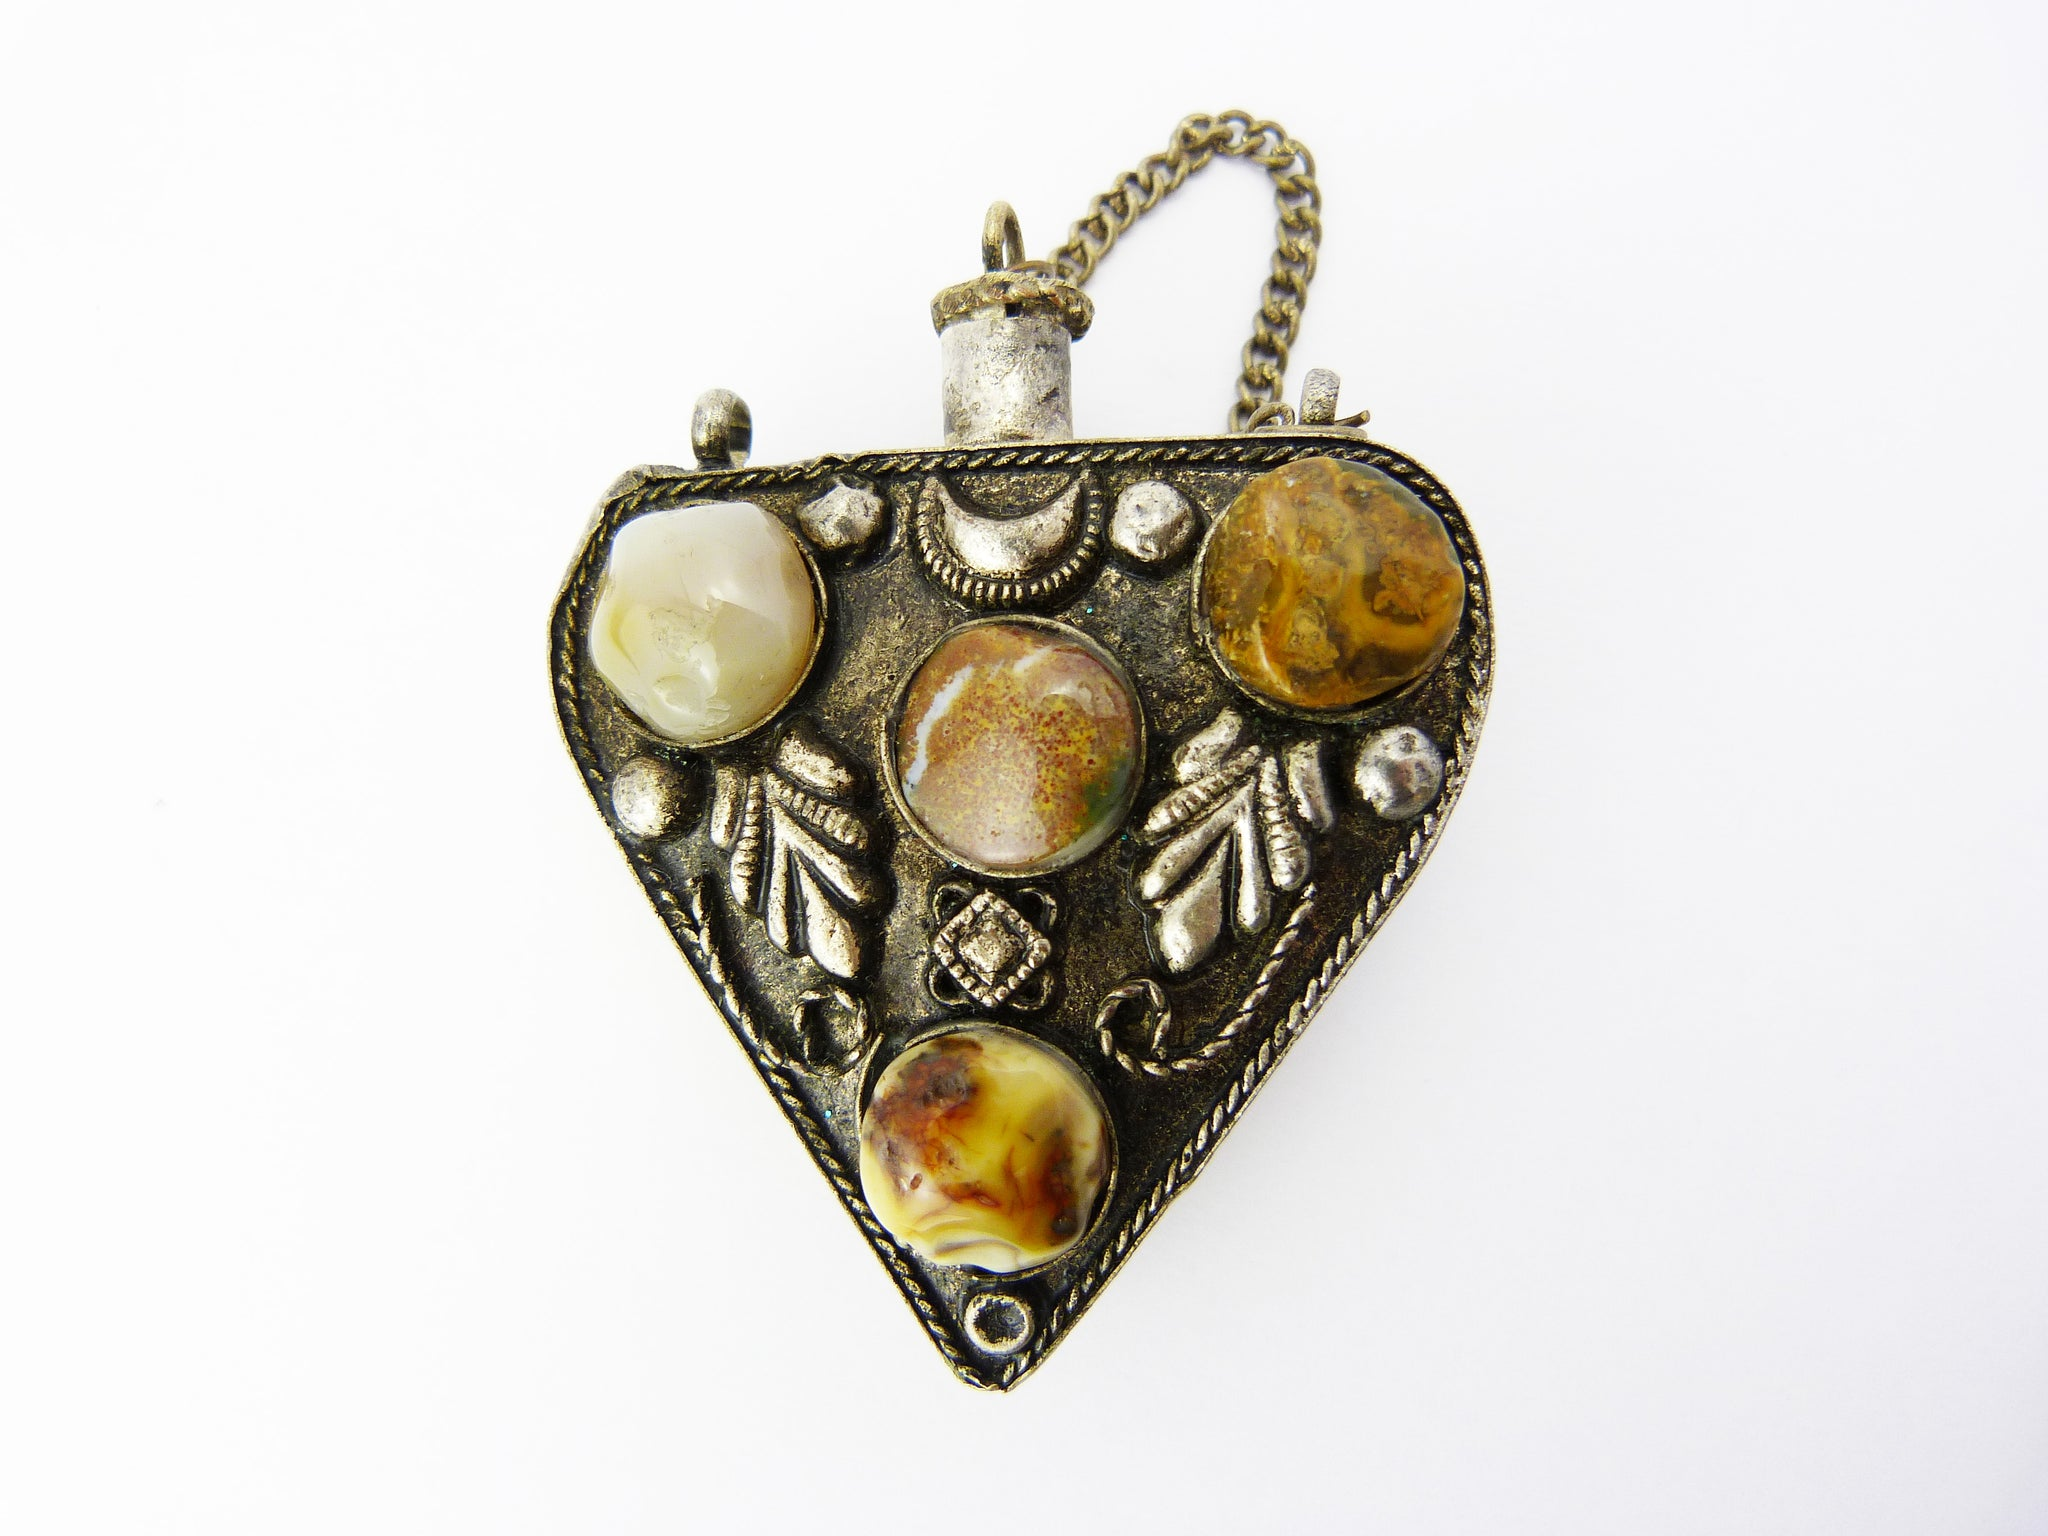 Antique Victorian Silver Tone Multi Stone Perfume Scent Bottle Pendant Chatelaine - Gothic Style